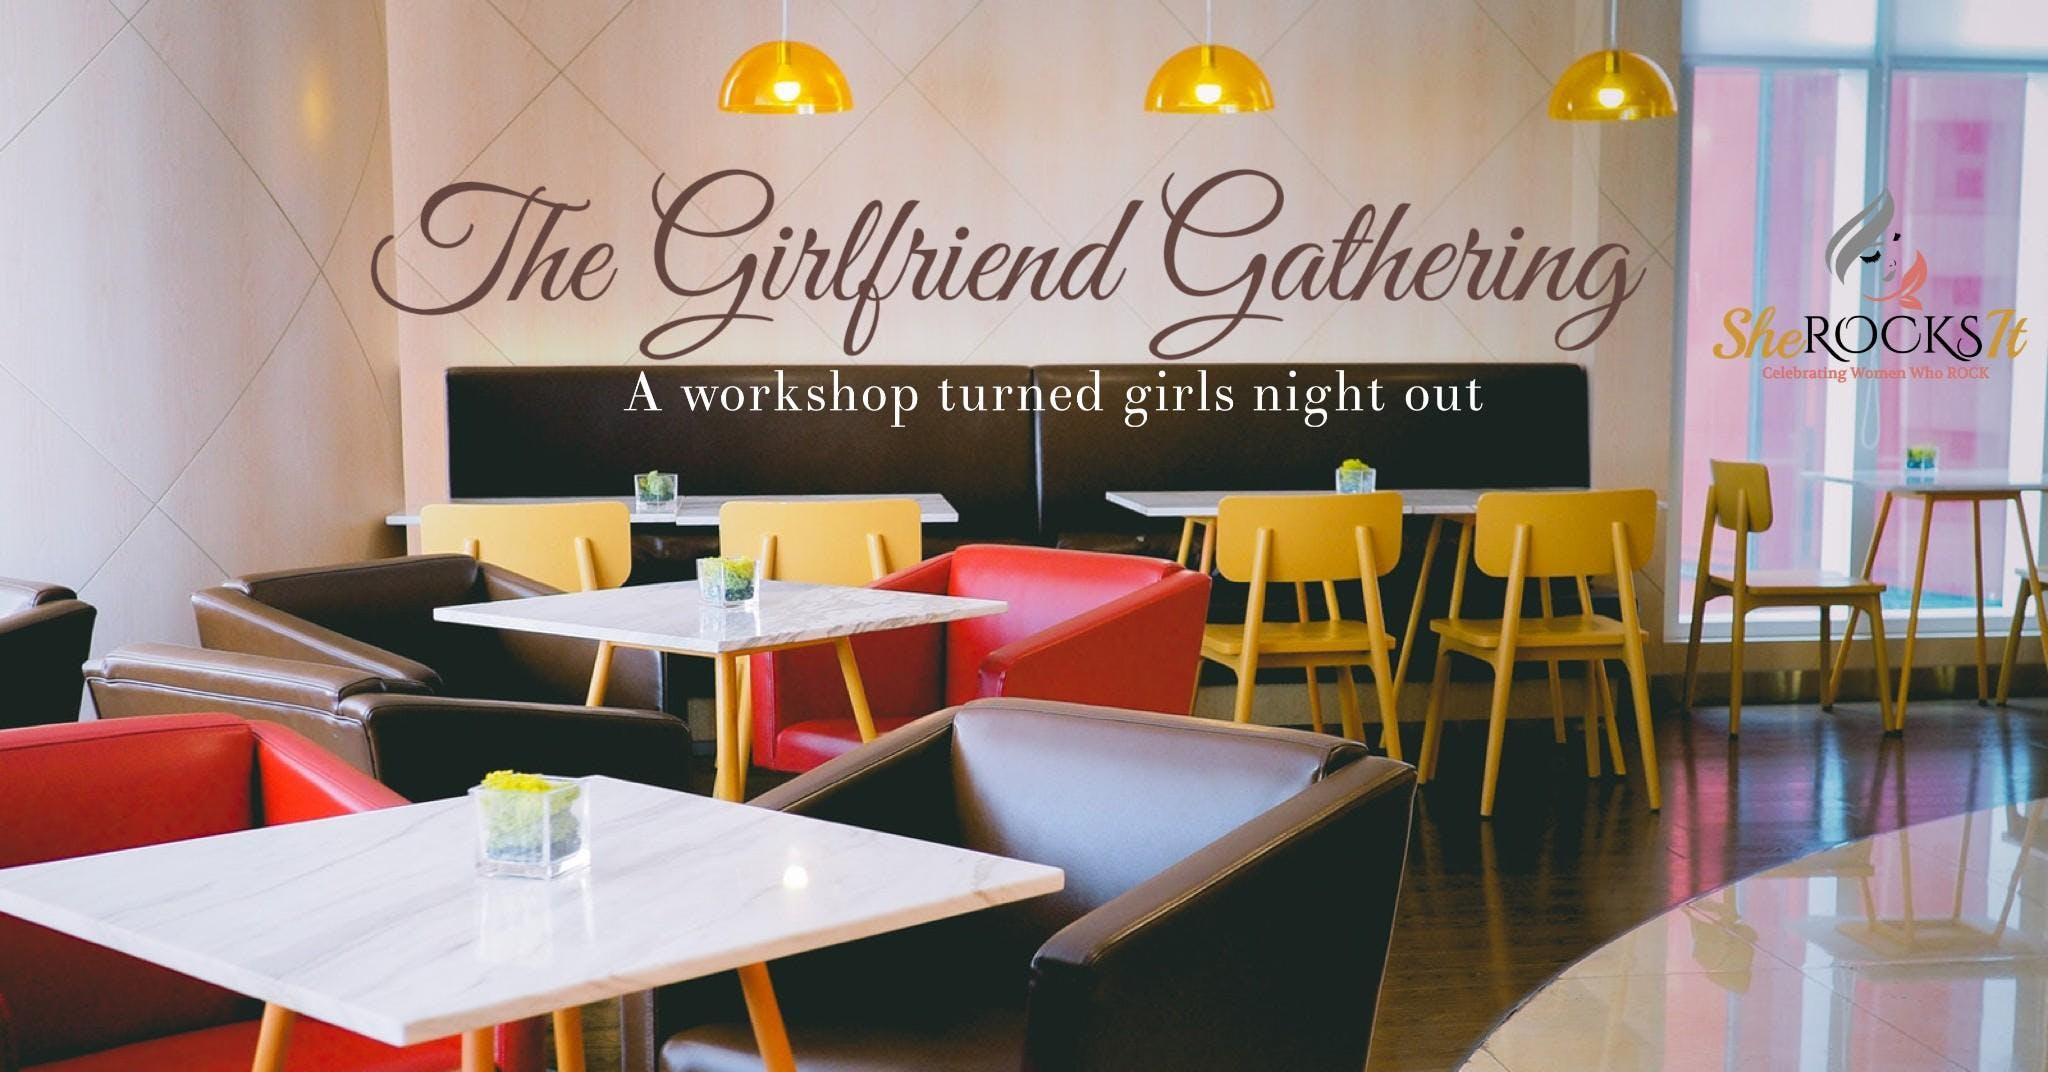 The Girlfriend Gathering